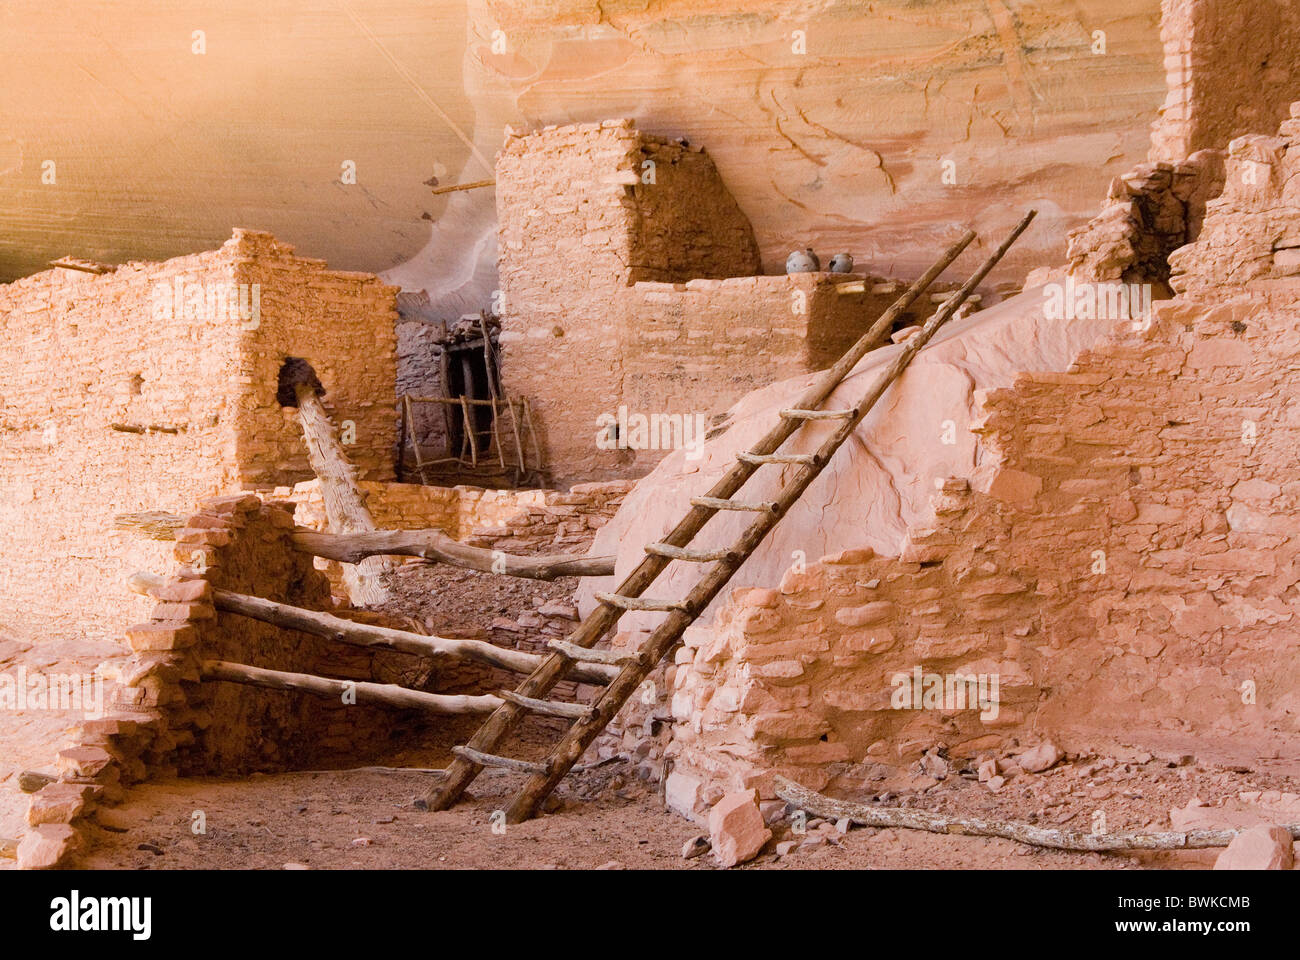 Keet Seel ruins ruins rocks settlement Anasazi culture Native Americans Indian native Navajo national monumen - Stock Image